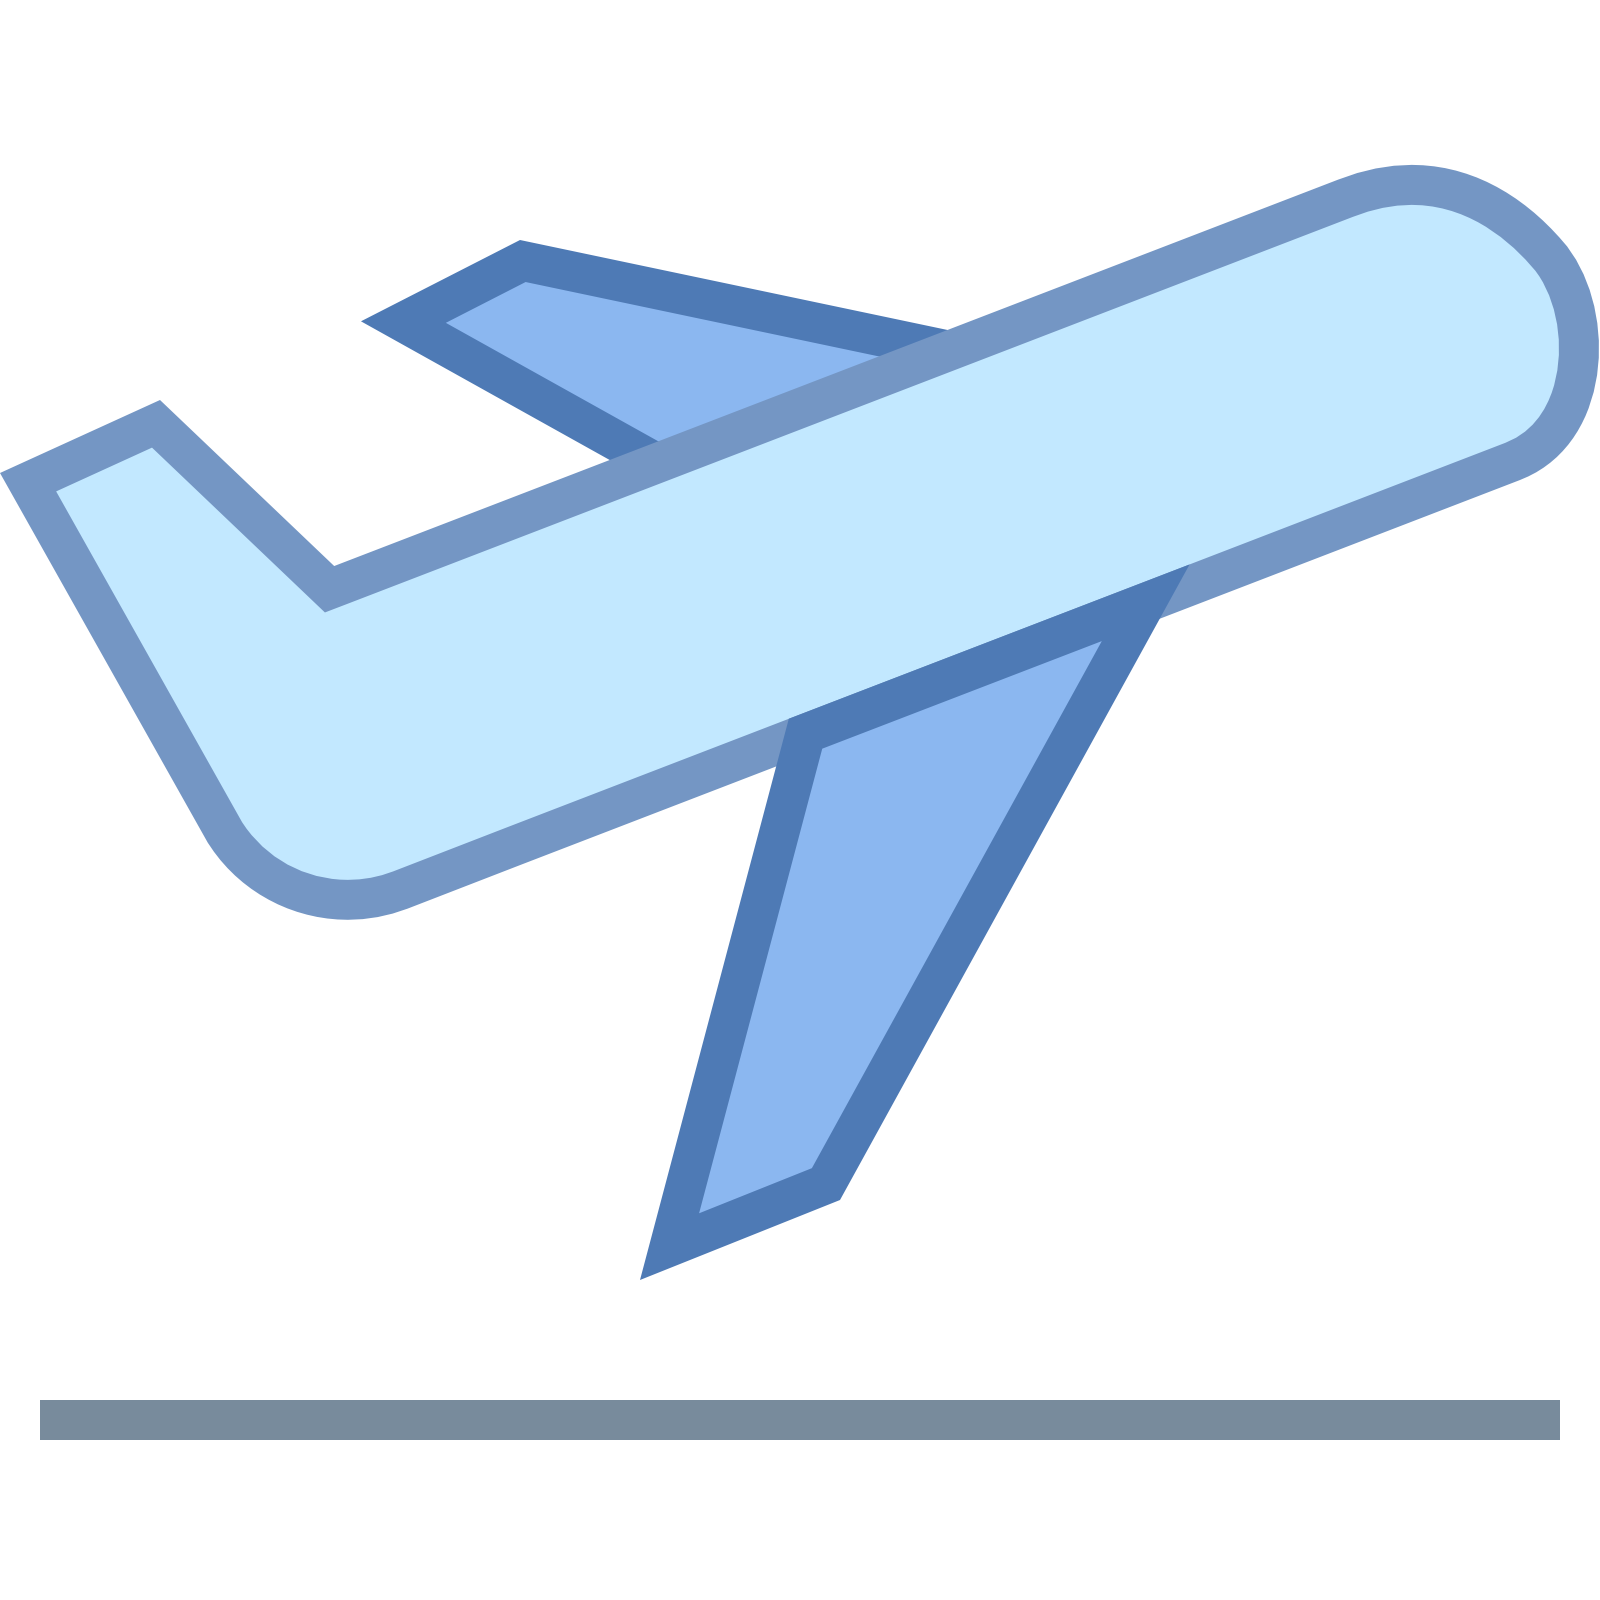 Airplane Take Off Icon.